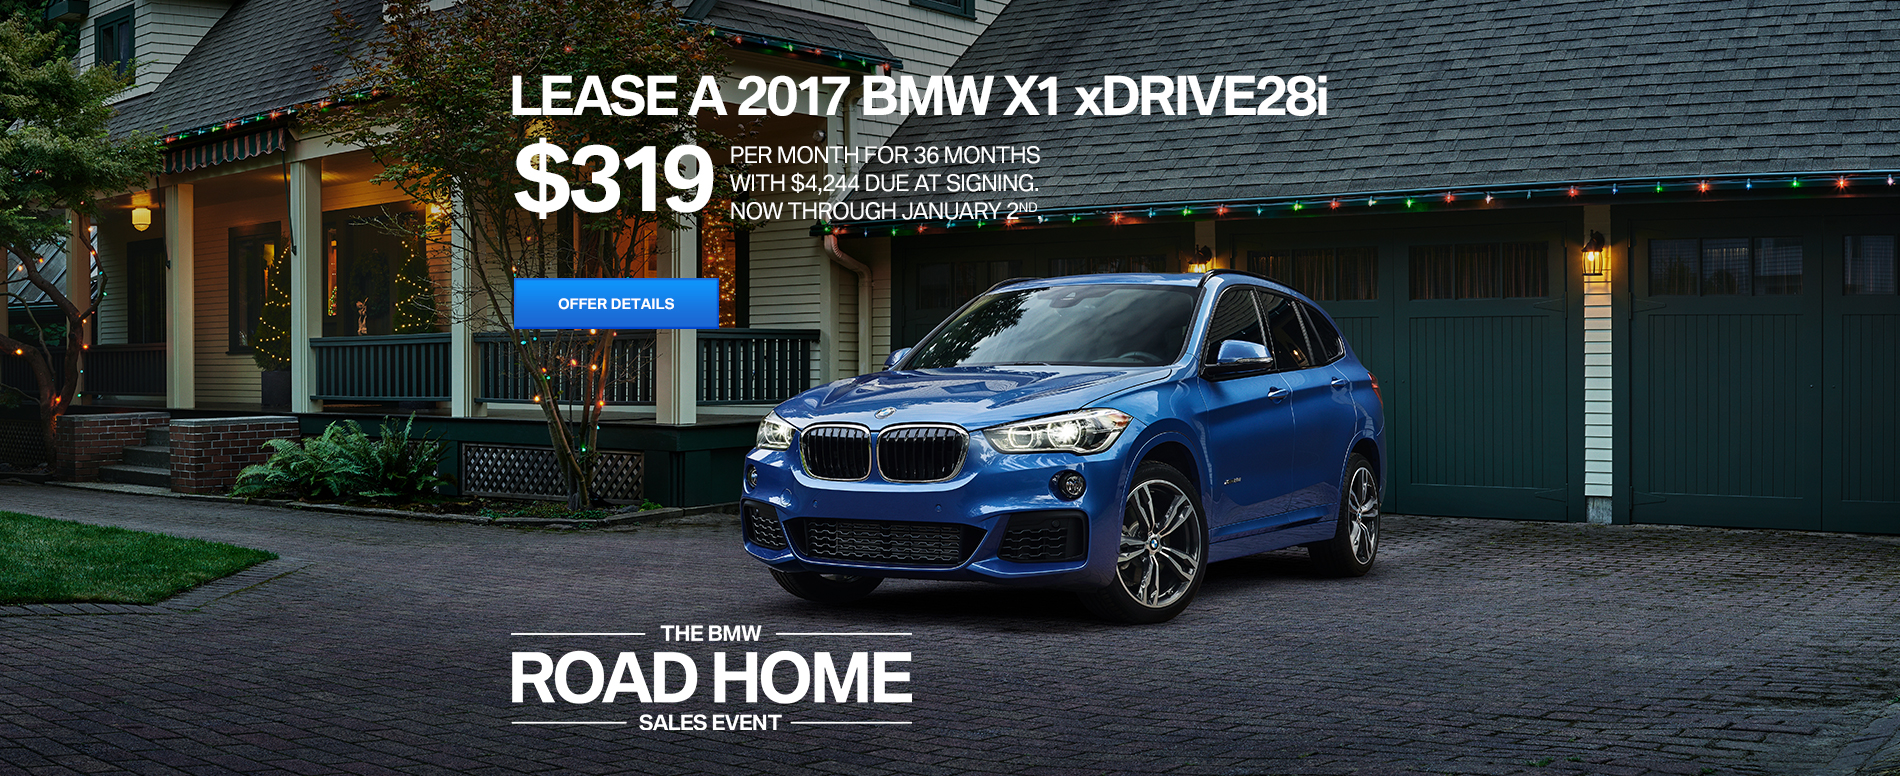 LEASE A 2017 BMW X1 xDrive28i FOR $319/MO FOR 36 MONTHS WITH $4,